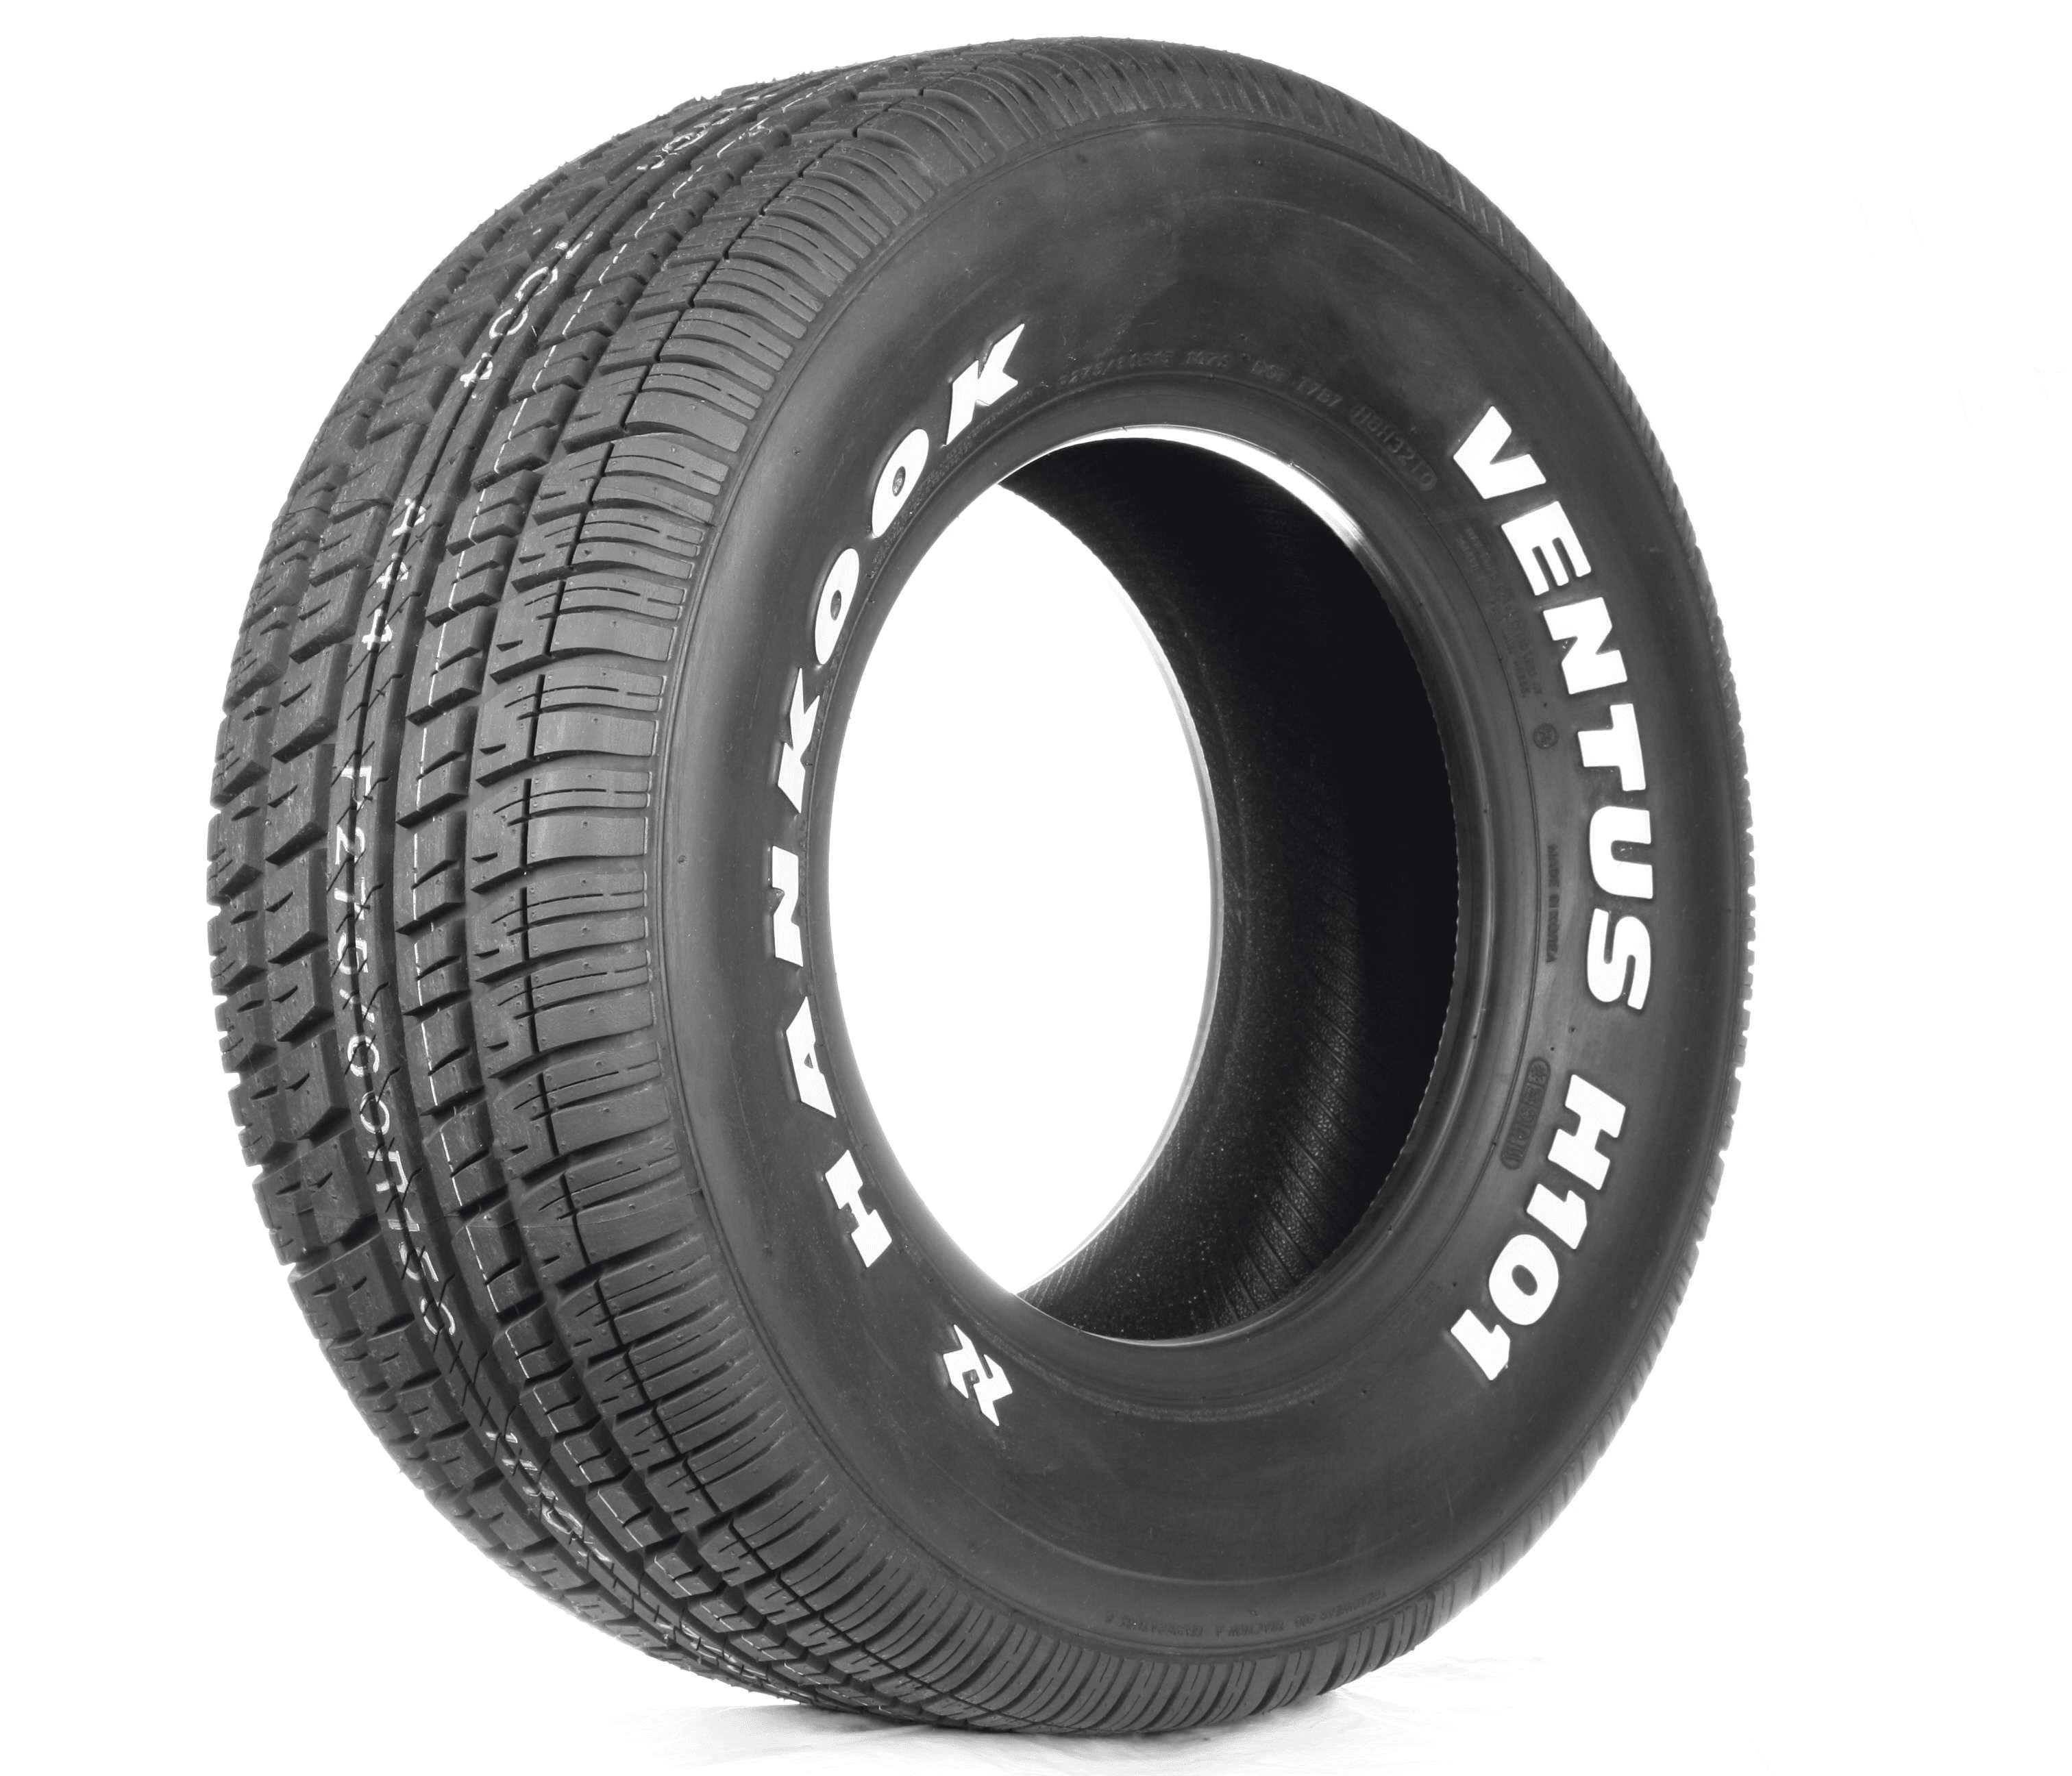 hankook h101 all season tire 26550r15 99s